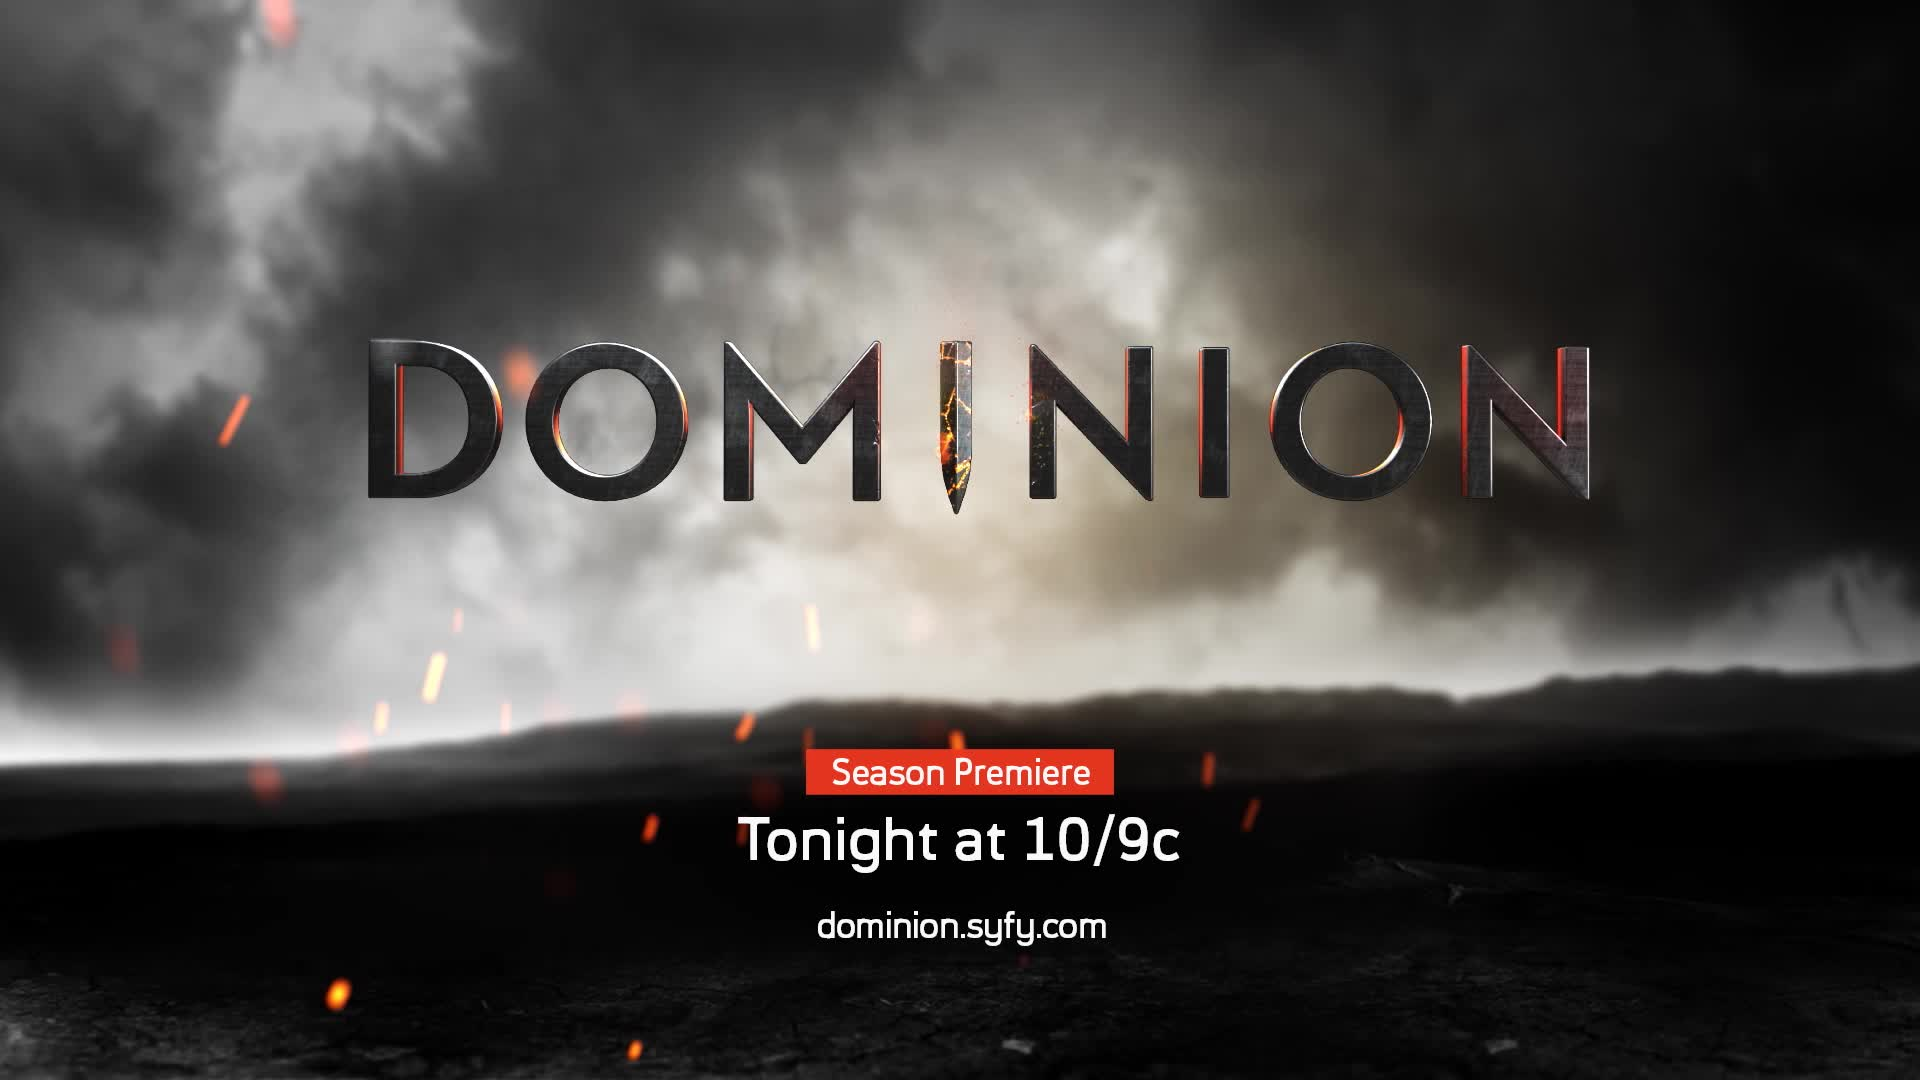 The Dominion